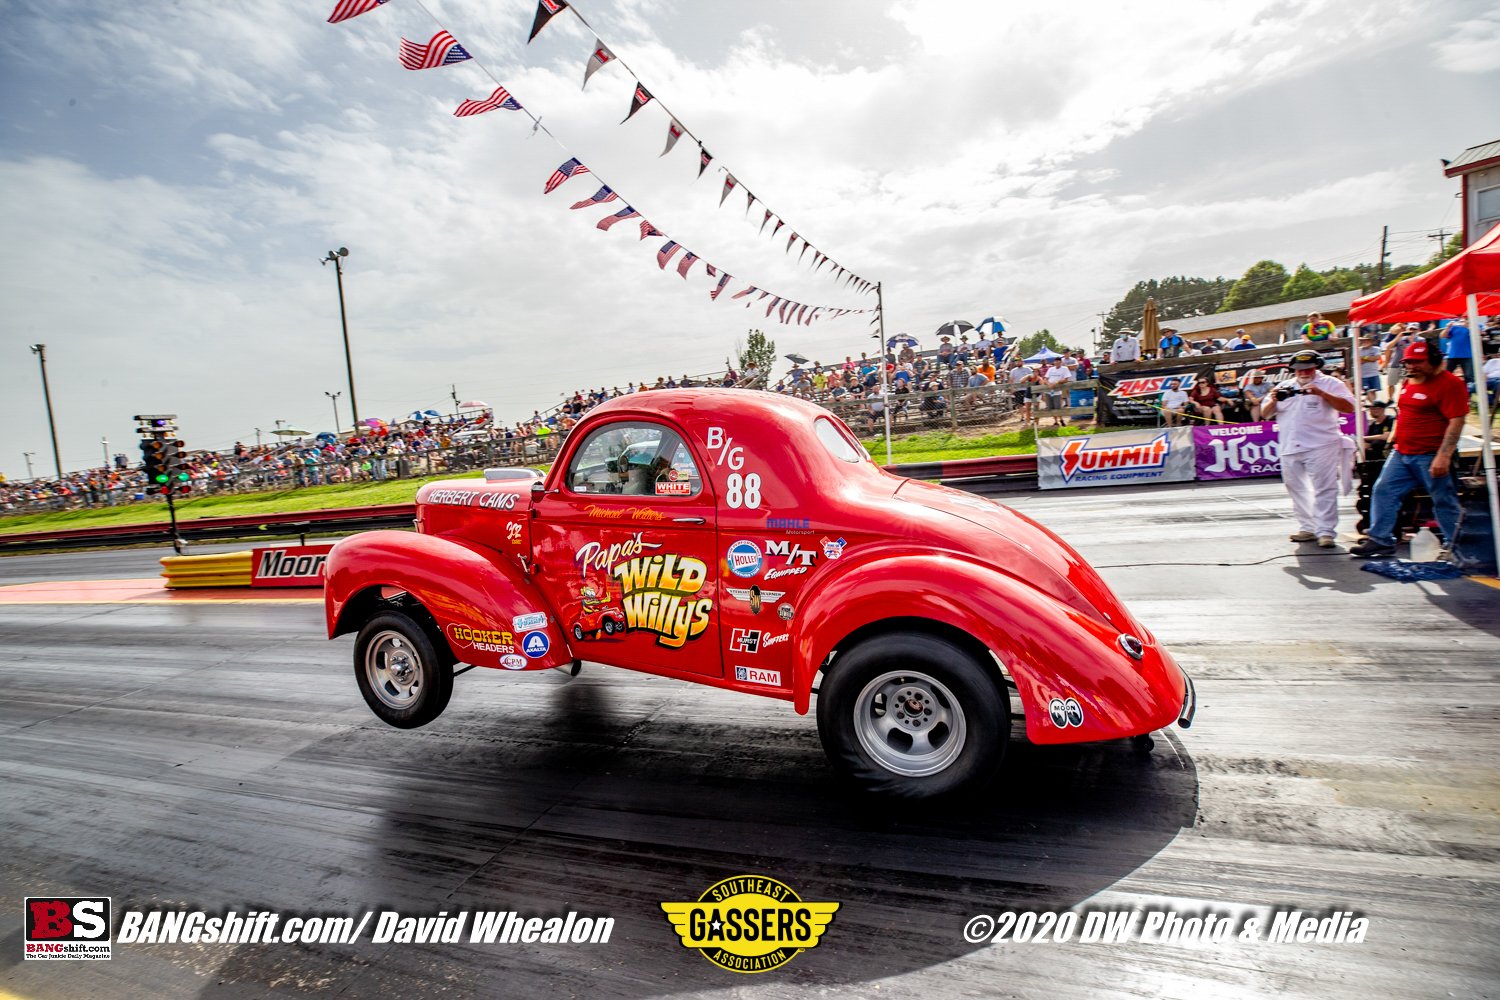 Southeast Gassers Action Photos: More Great Images From These Leaping Beasts At Mooresville Dragway